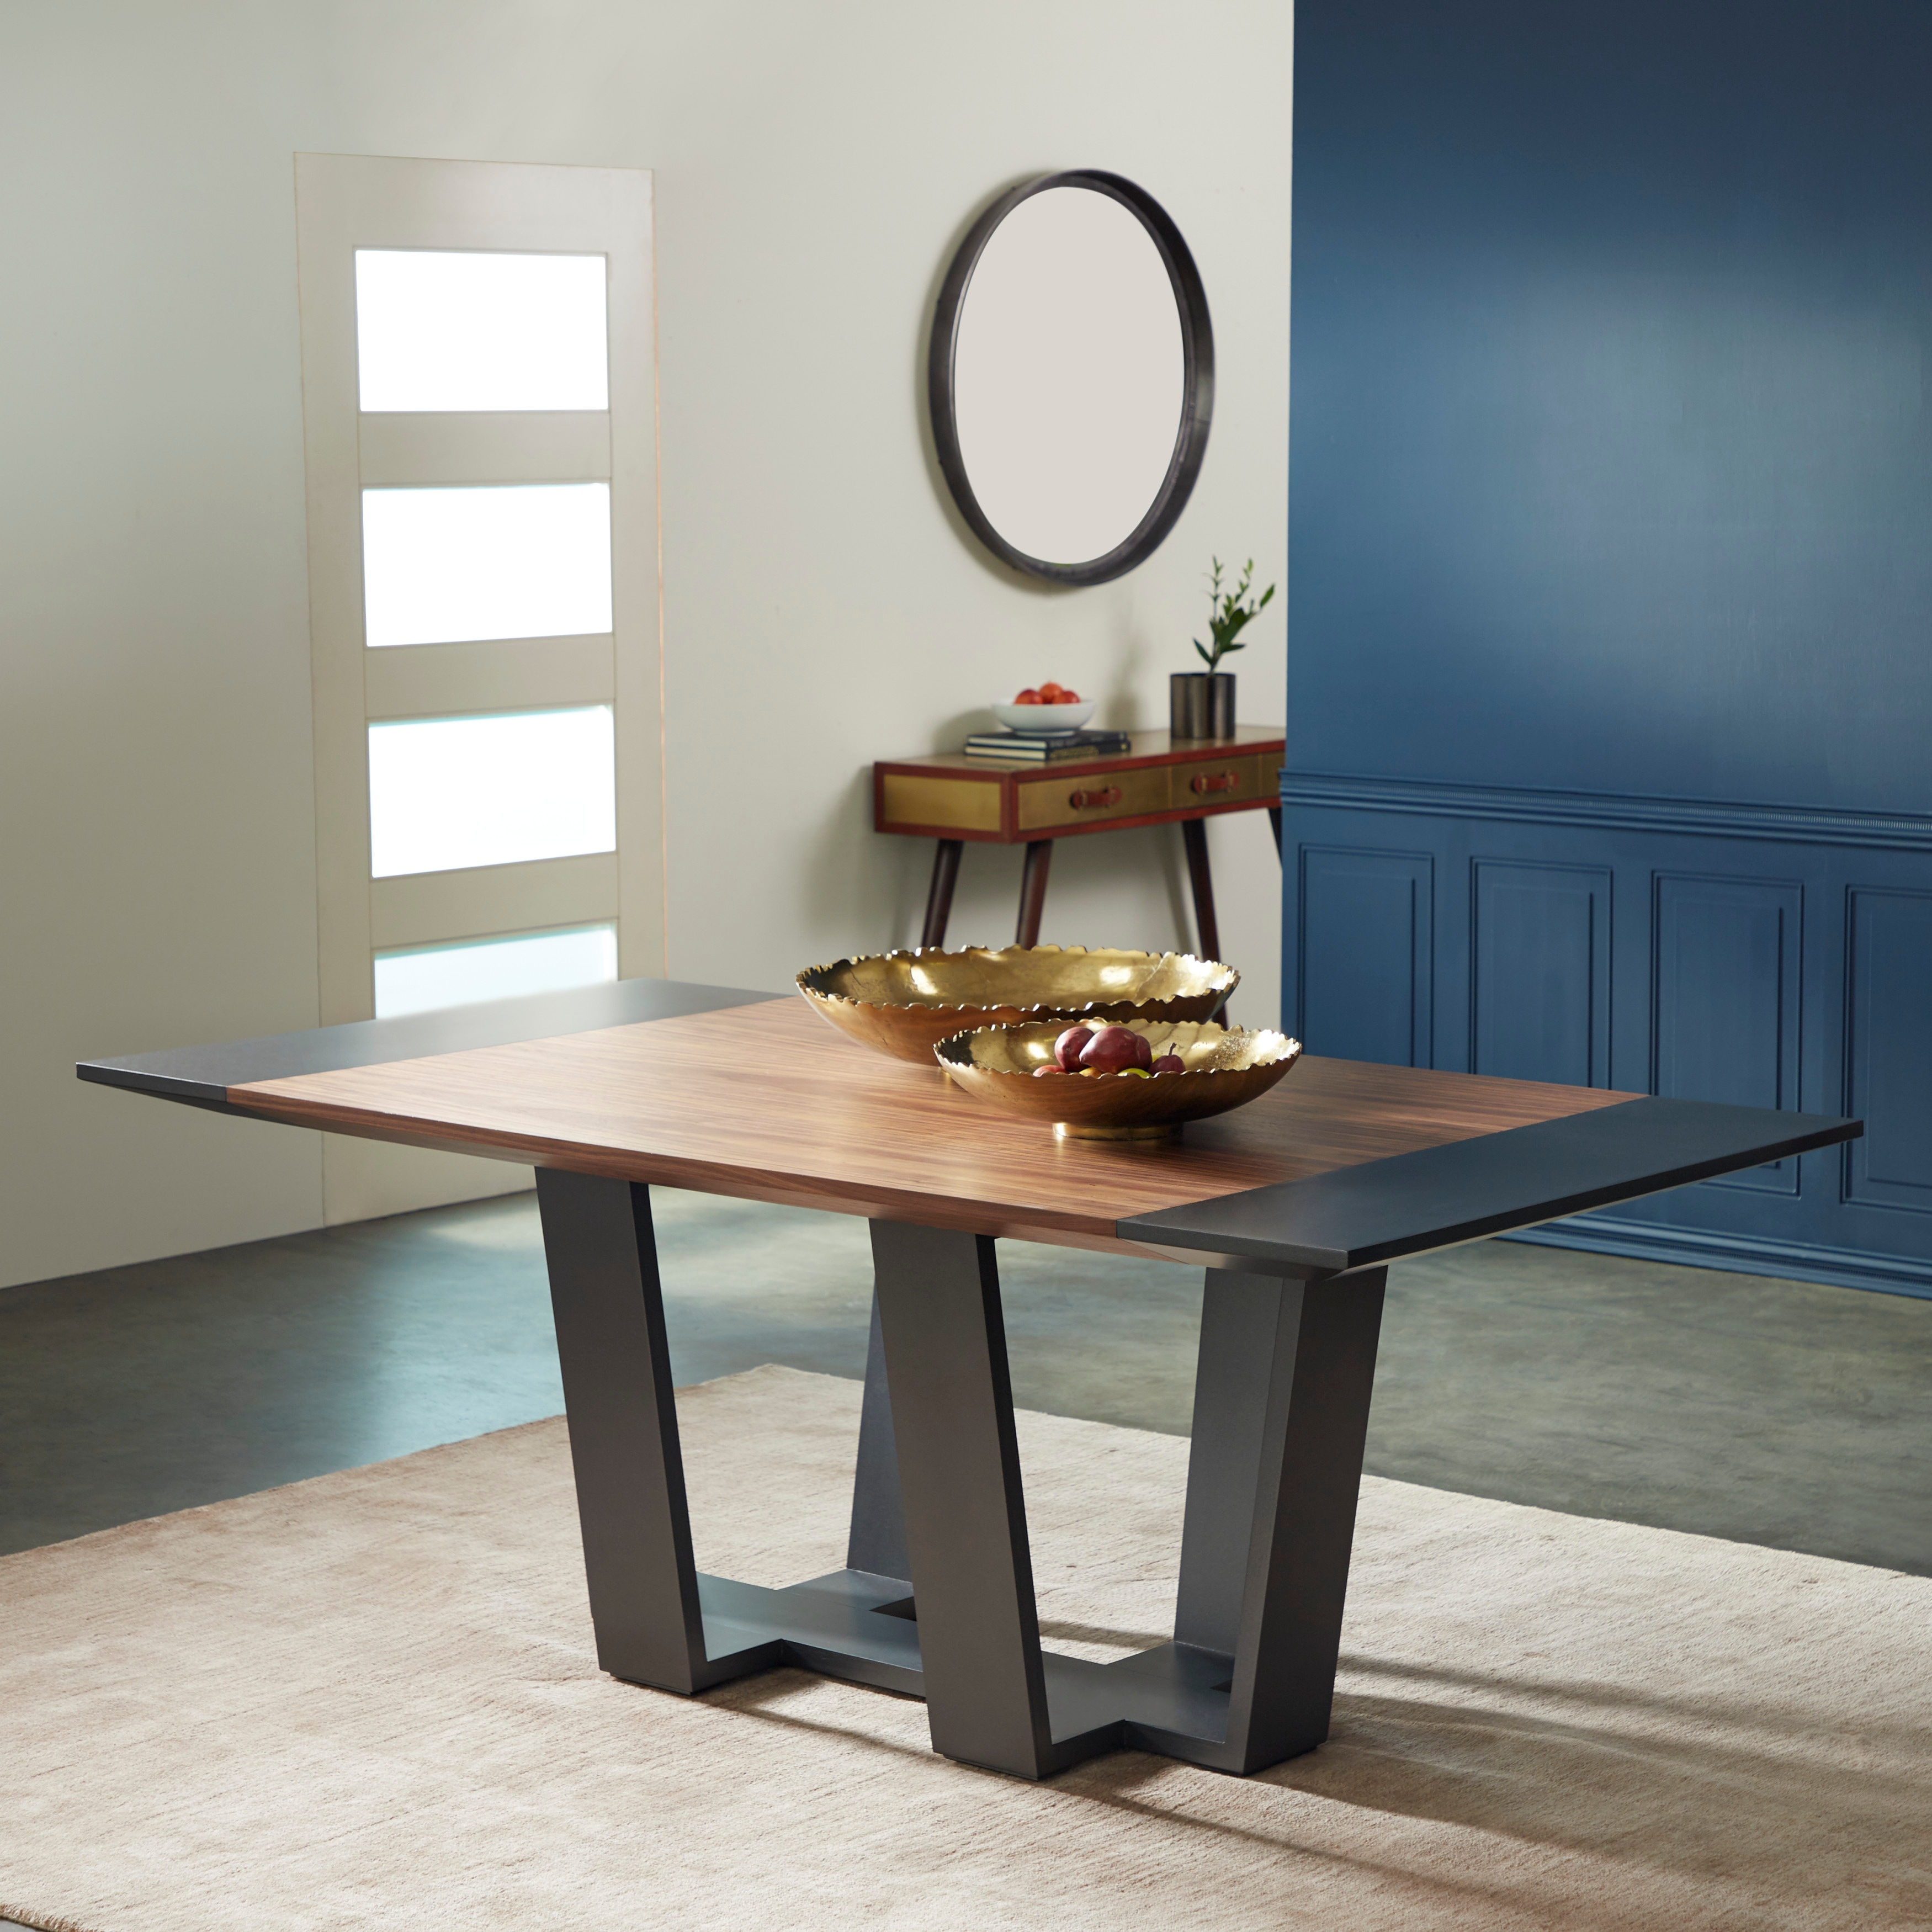 Contemporary 6 Seat Natural Wood Dining Table 80 X 44 82 X 9 X 20 On Sale Overstock 32114589